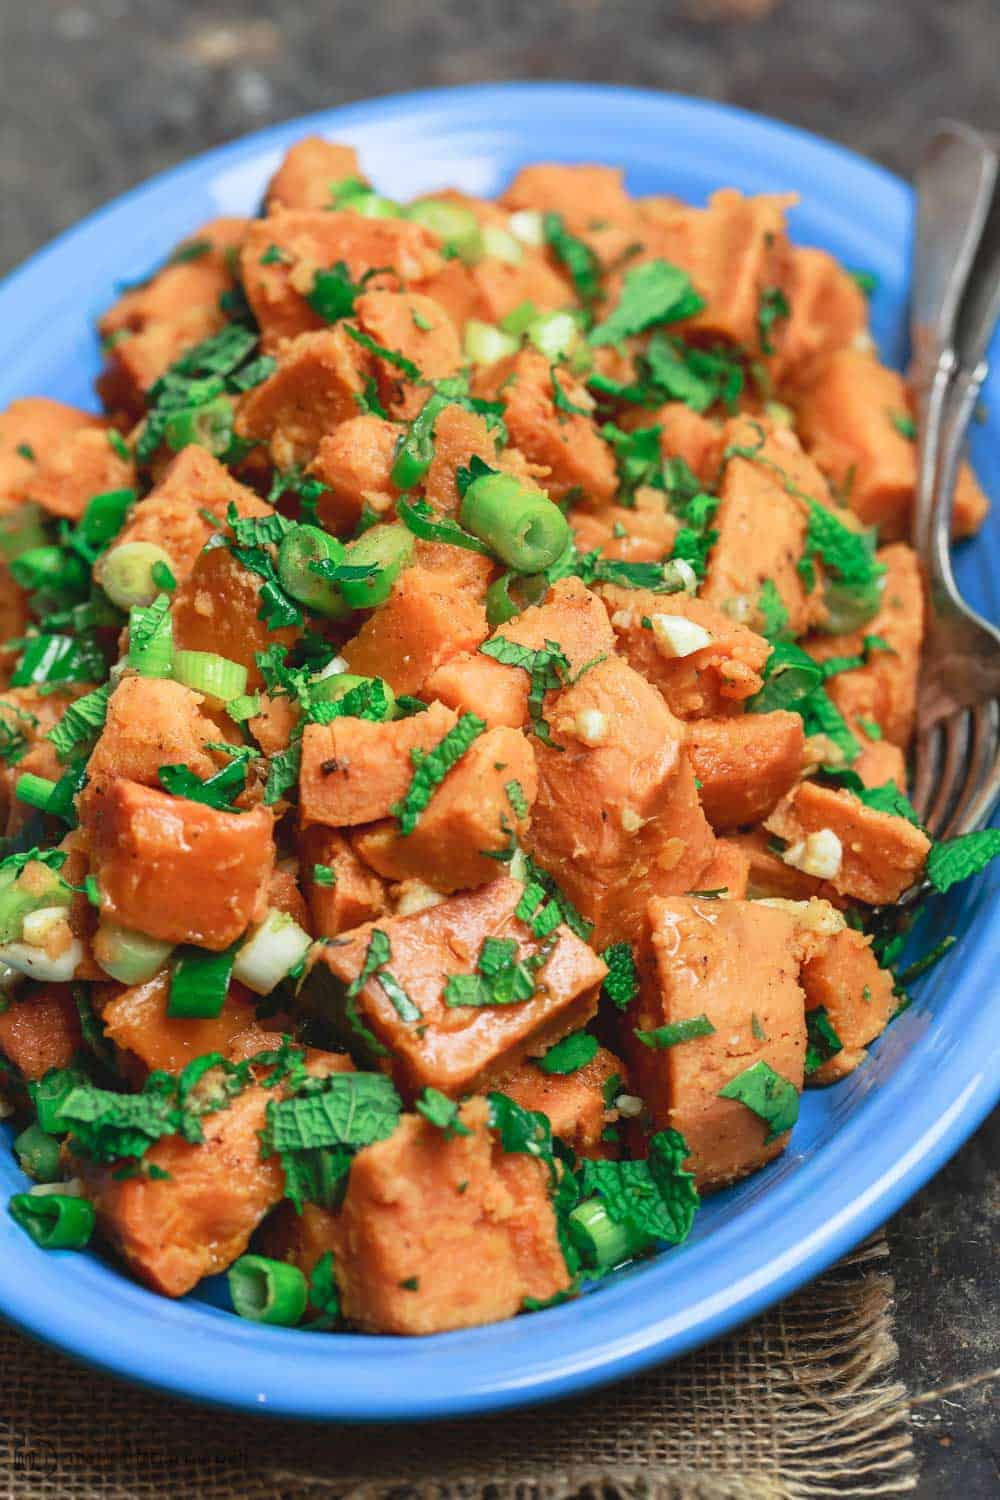 Simple sweet potato recipe with fresh herbs, garlic, scallions, and extra virgin olive oil